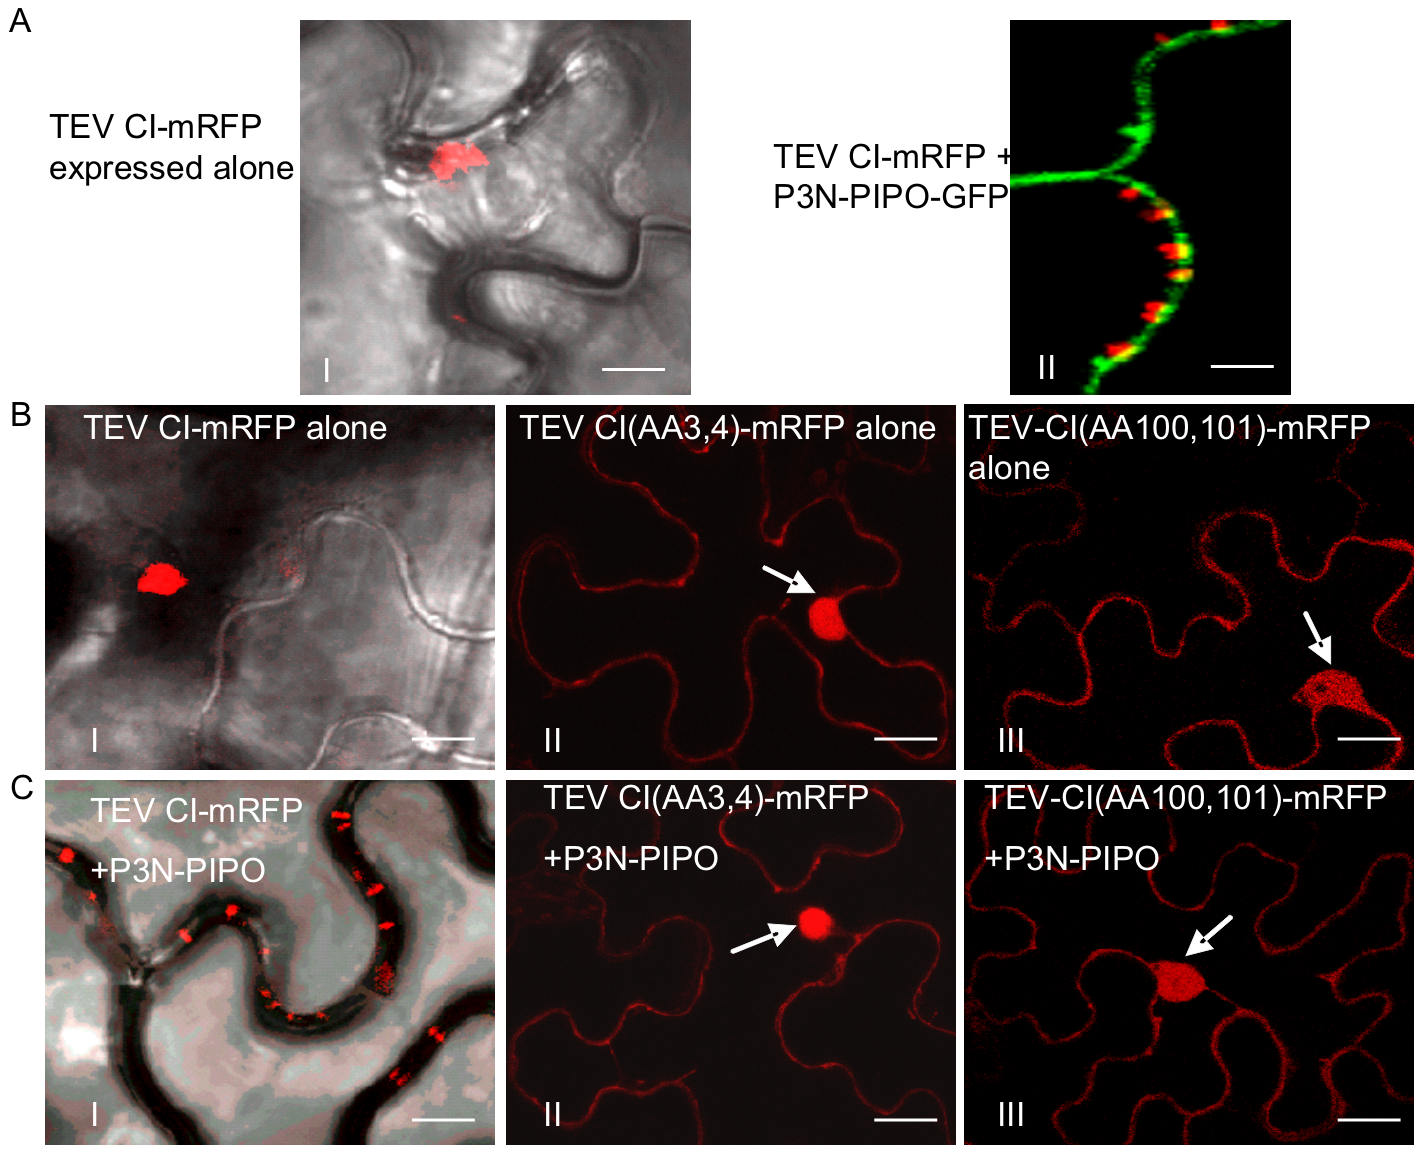 Two TEV CI mutants defective in cell-to-cell movement fail to form either cytoplasmic inclusions (when expressed alone) or PD-associated structures (in the presence of P3N-PIPO).